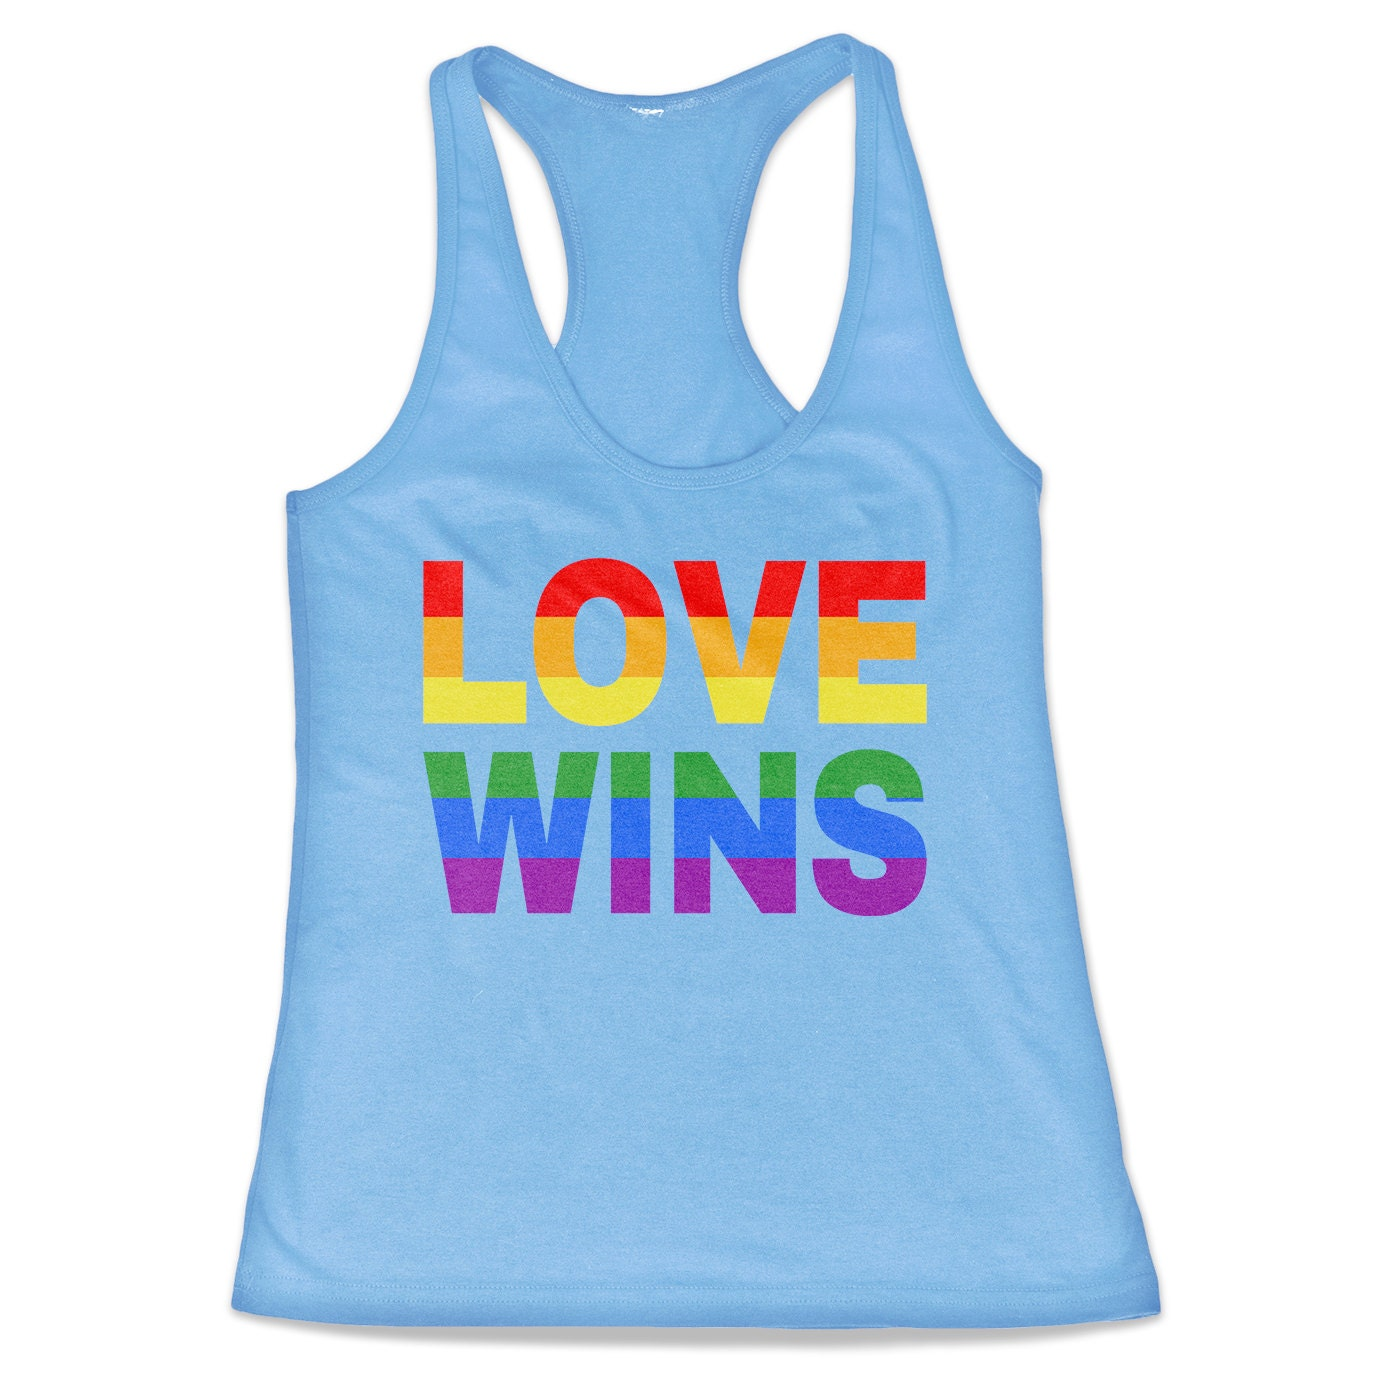 Love Wins - Love Not Hate Marriage Equality Gay Pride Tri-Blend Racerback Tank Top